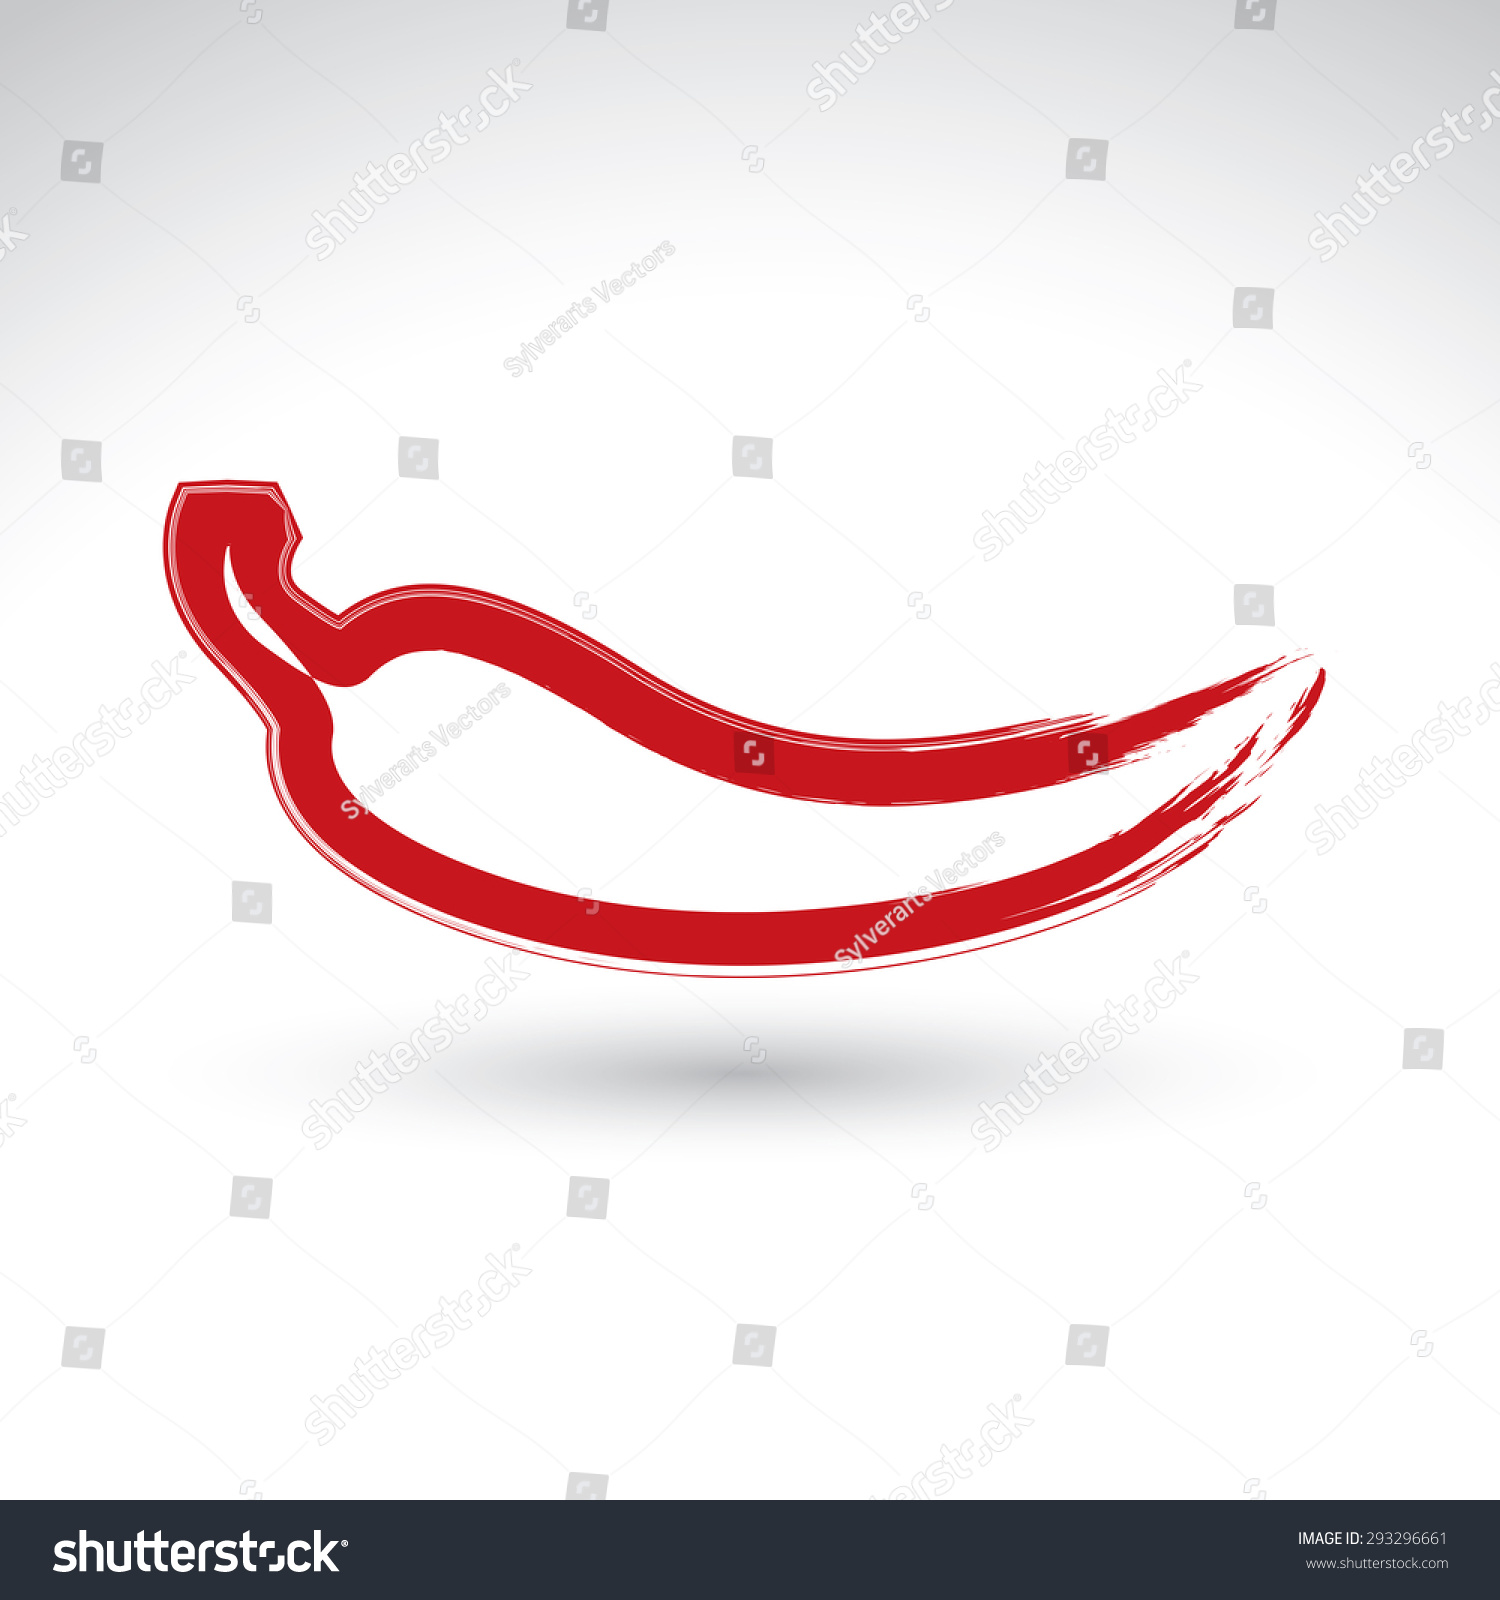 Handpainted simple vector red hot chili stock vector 293296661 hand painted simple vector red hot chili pepper icon isolated on white background mexican biocorpaavc